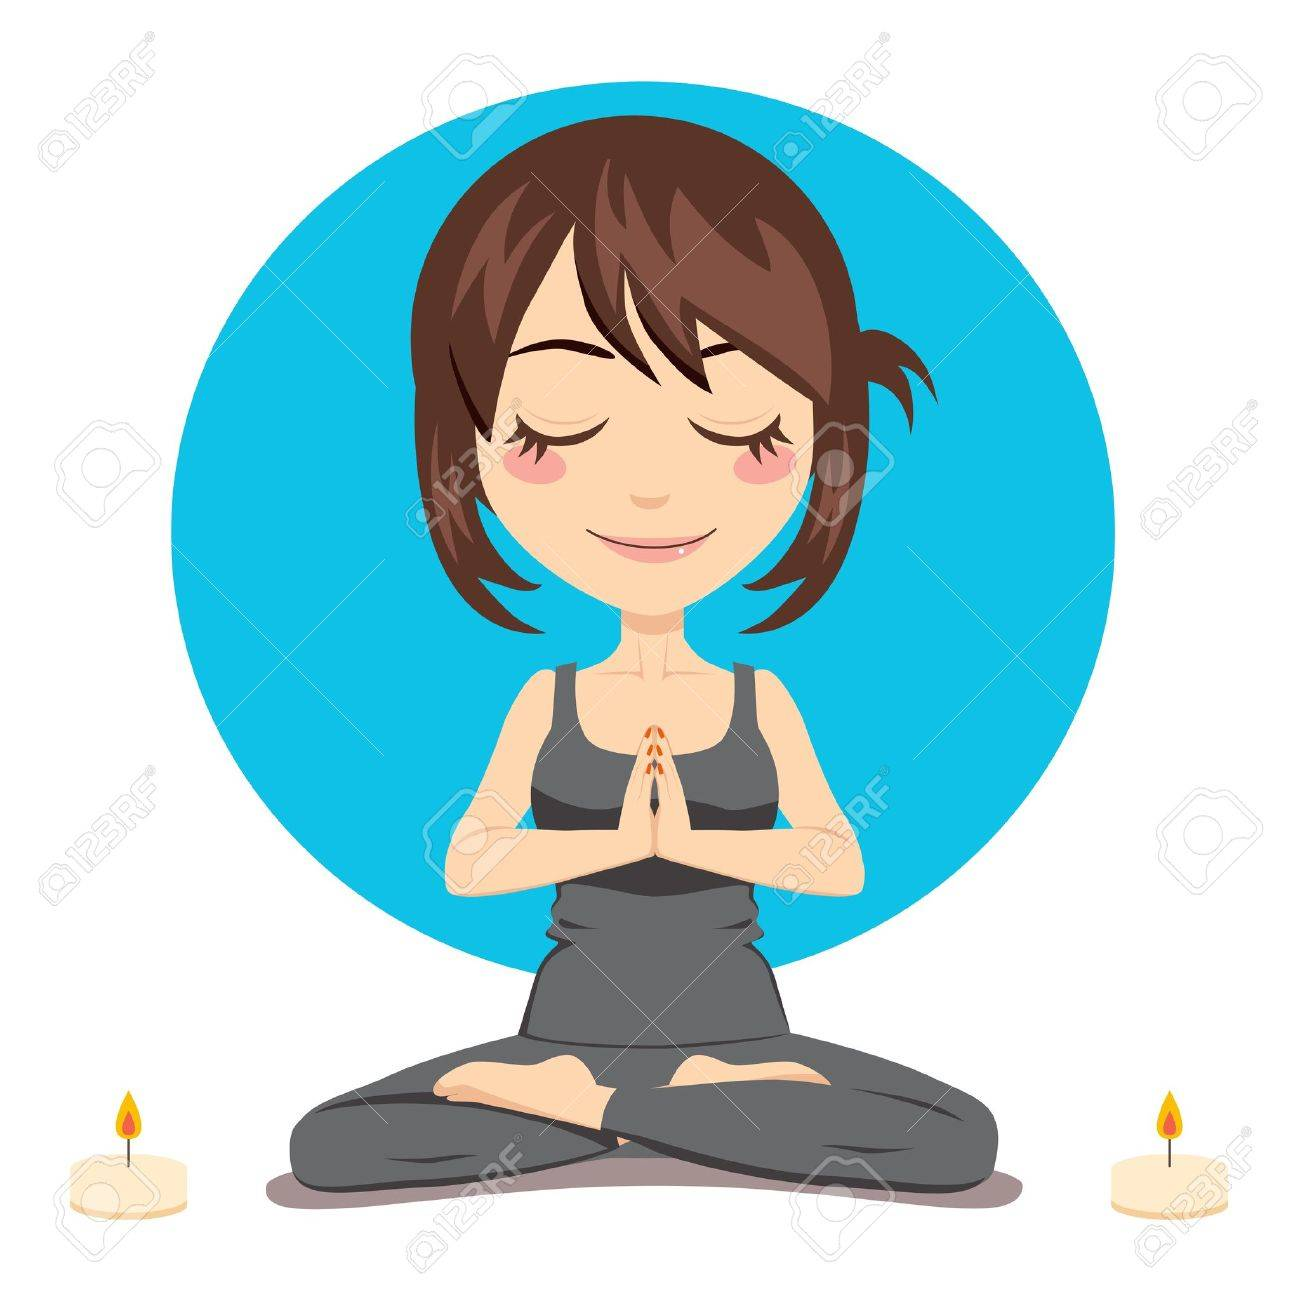 Cute brunette woman doing yoga lotus position with two candles on side Stock Vector - 9457716